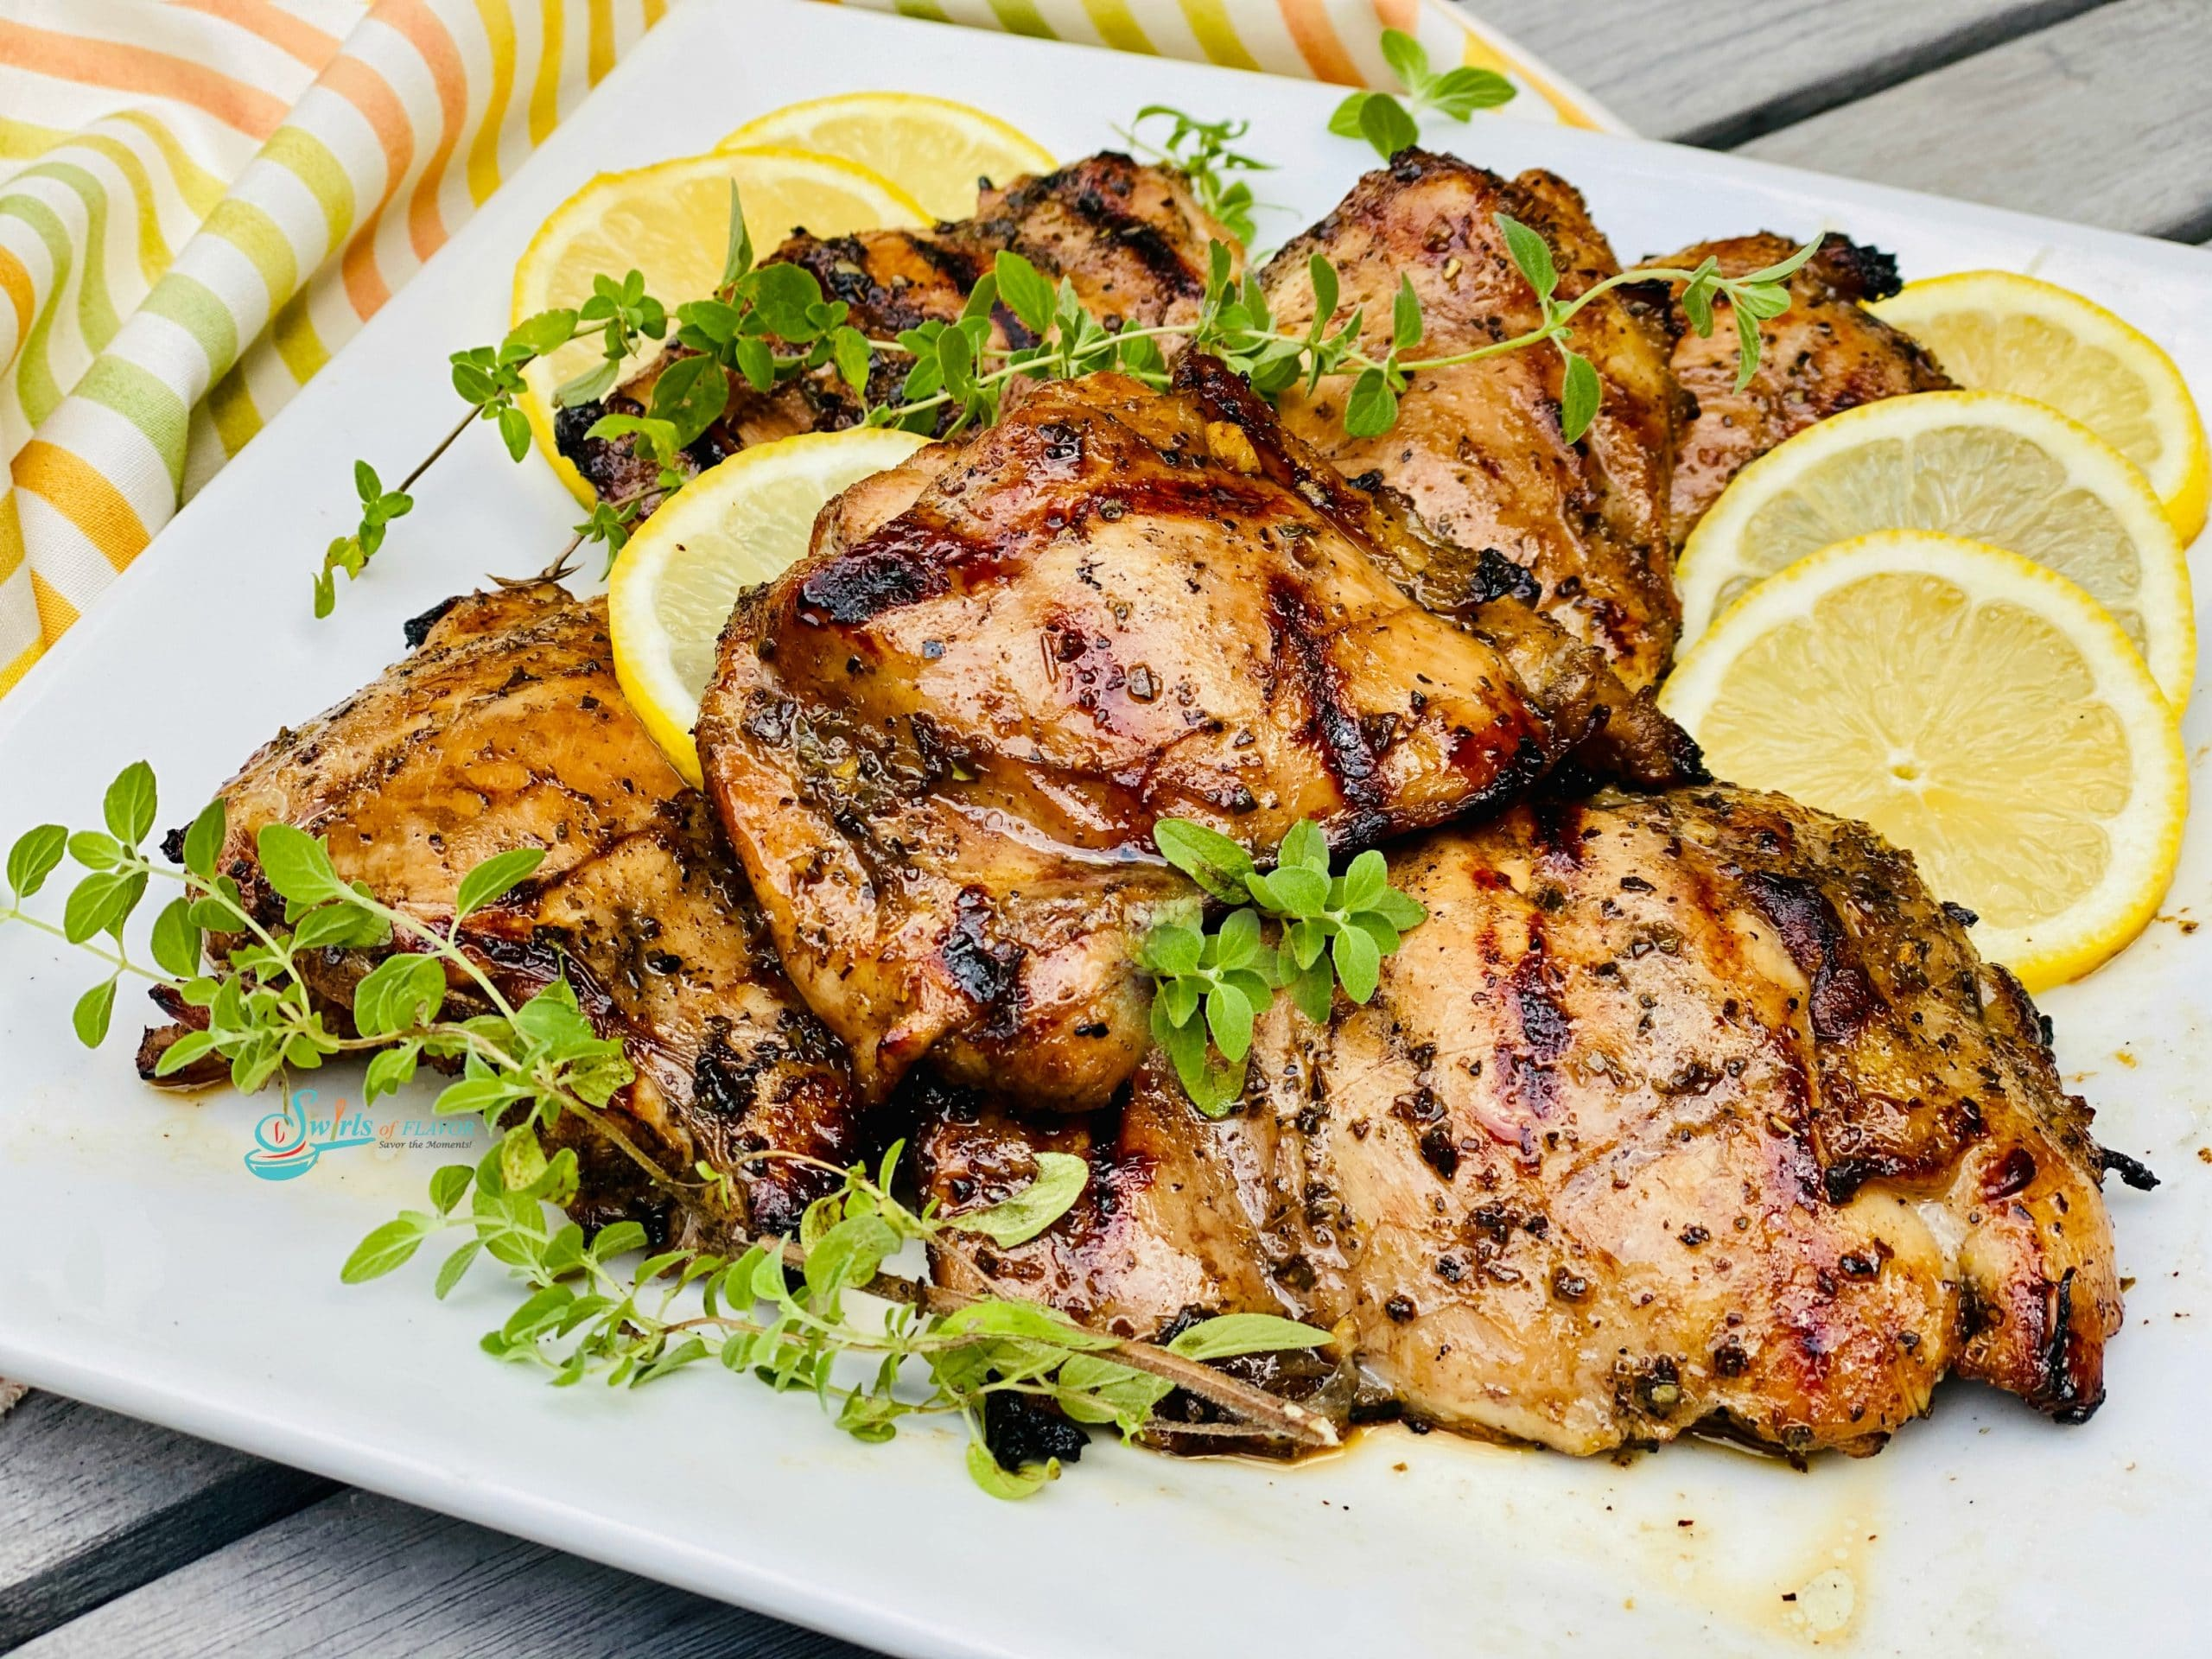 Marinated grilled chicken with lemon and oregano